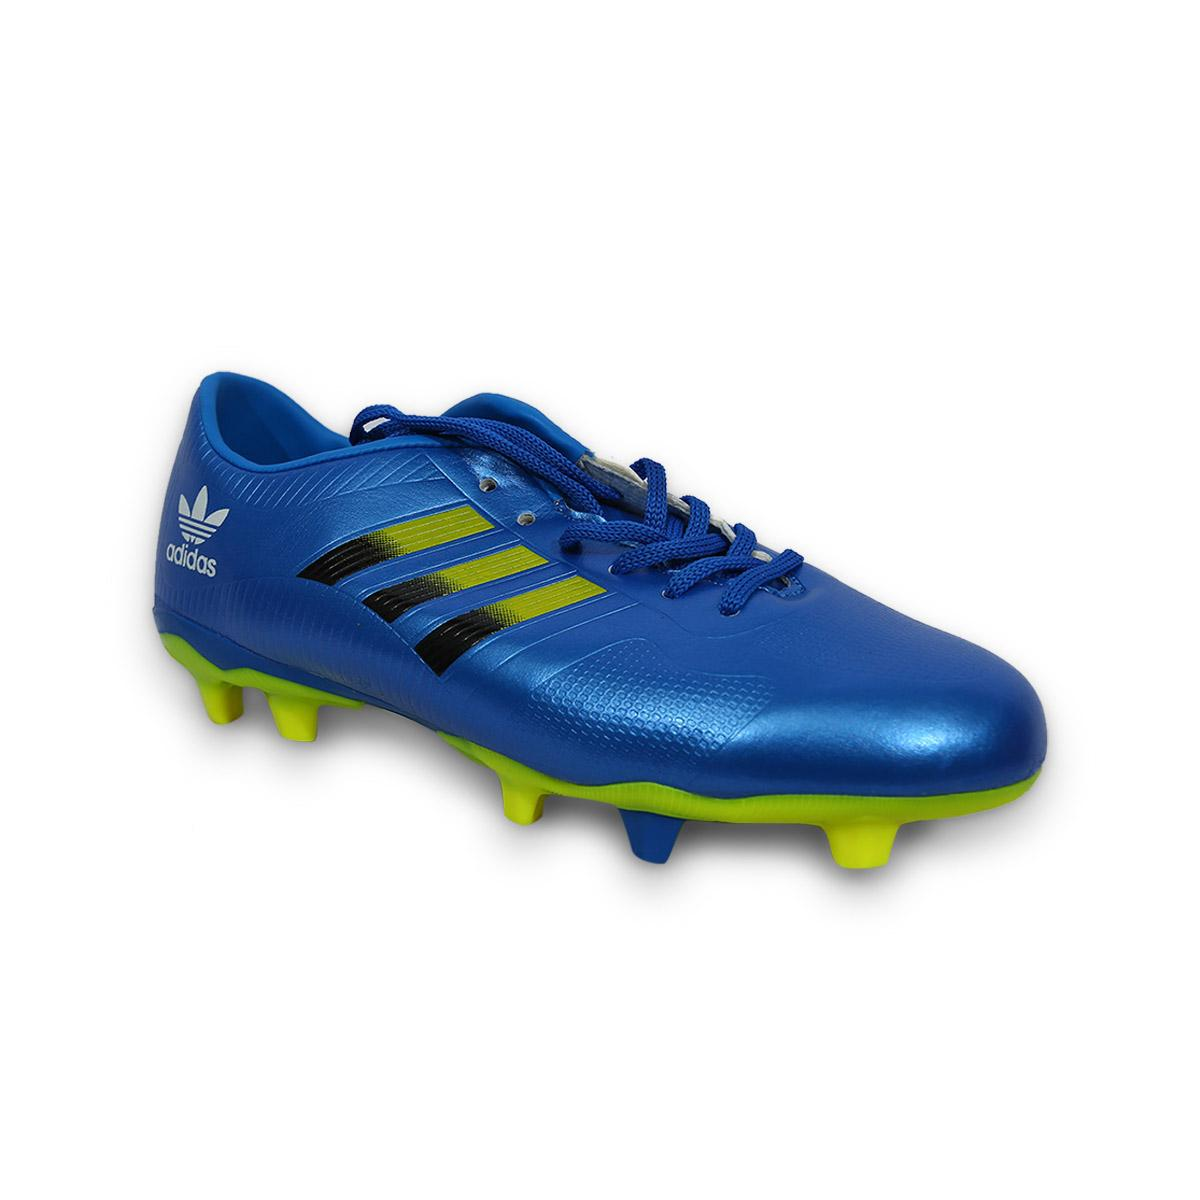 9b737a834592 Artificial Leather Football Boot for Men: Buy Online at Best Prices ...